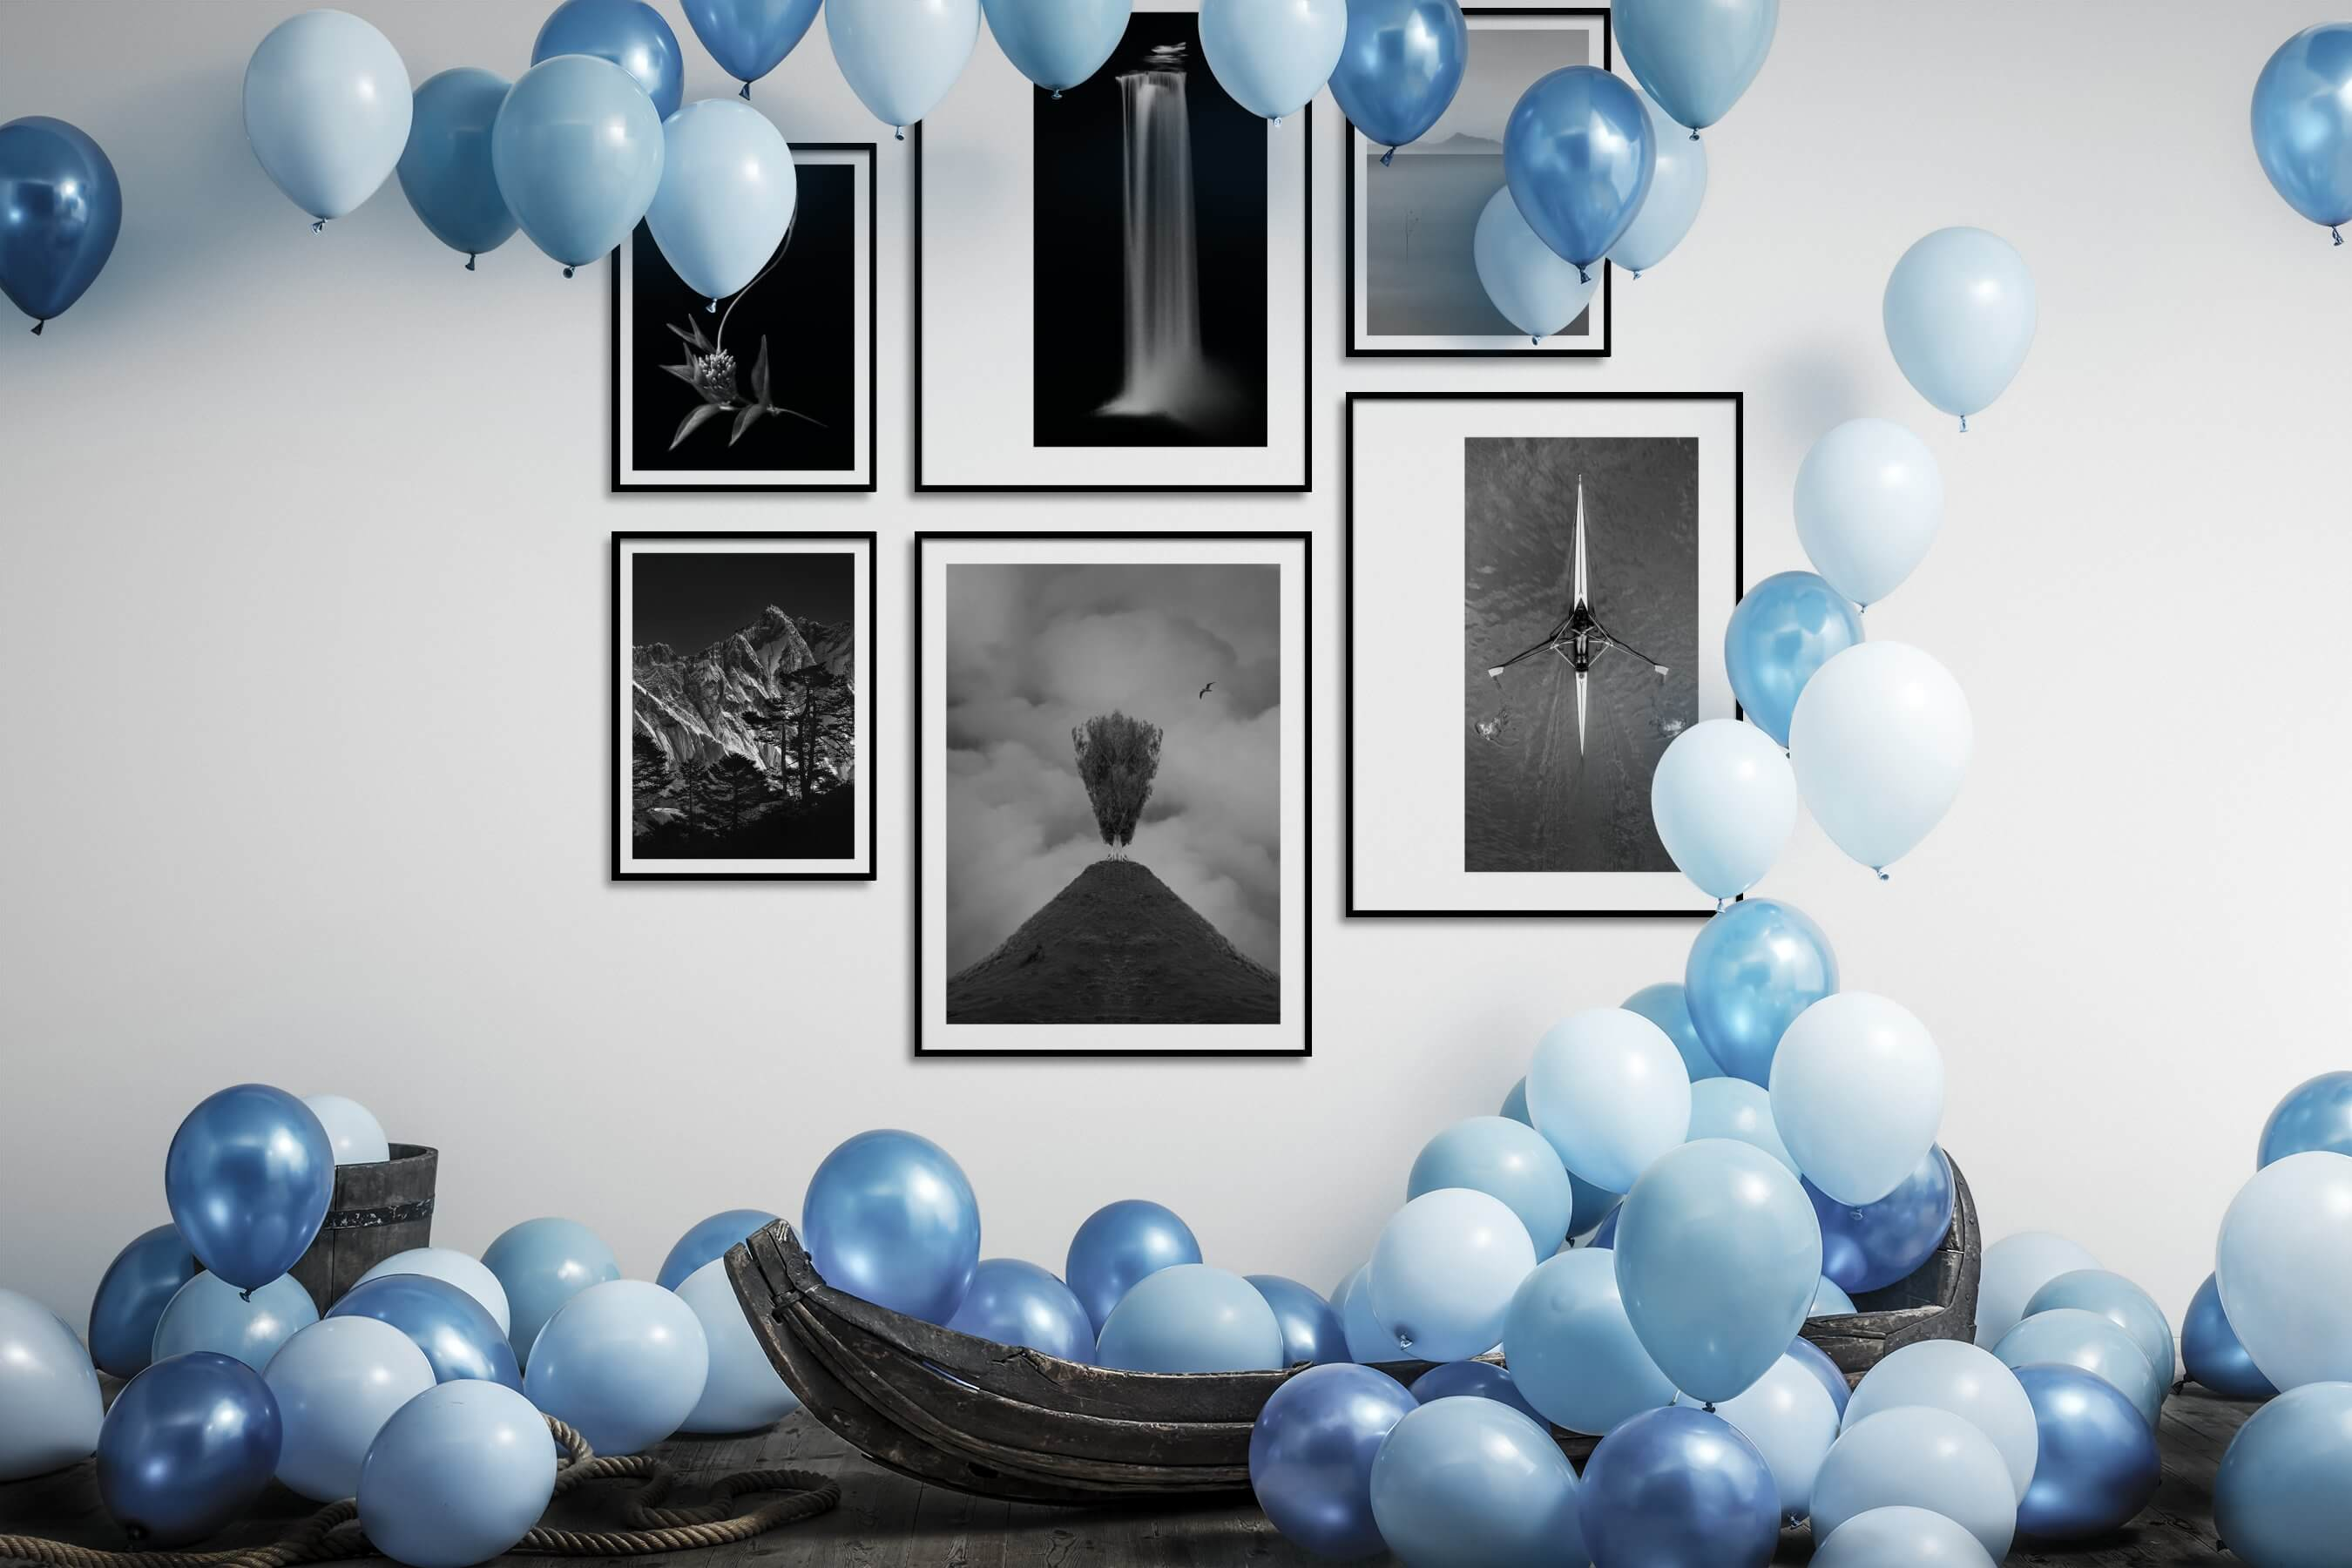 Gallery wall idea with six framed pictures arranged on a wall depicting Black & White, For the Minimalist, Flowers & Plants, Nature, Mindfulness, and Beach & Water